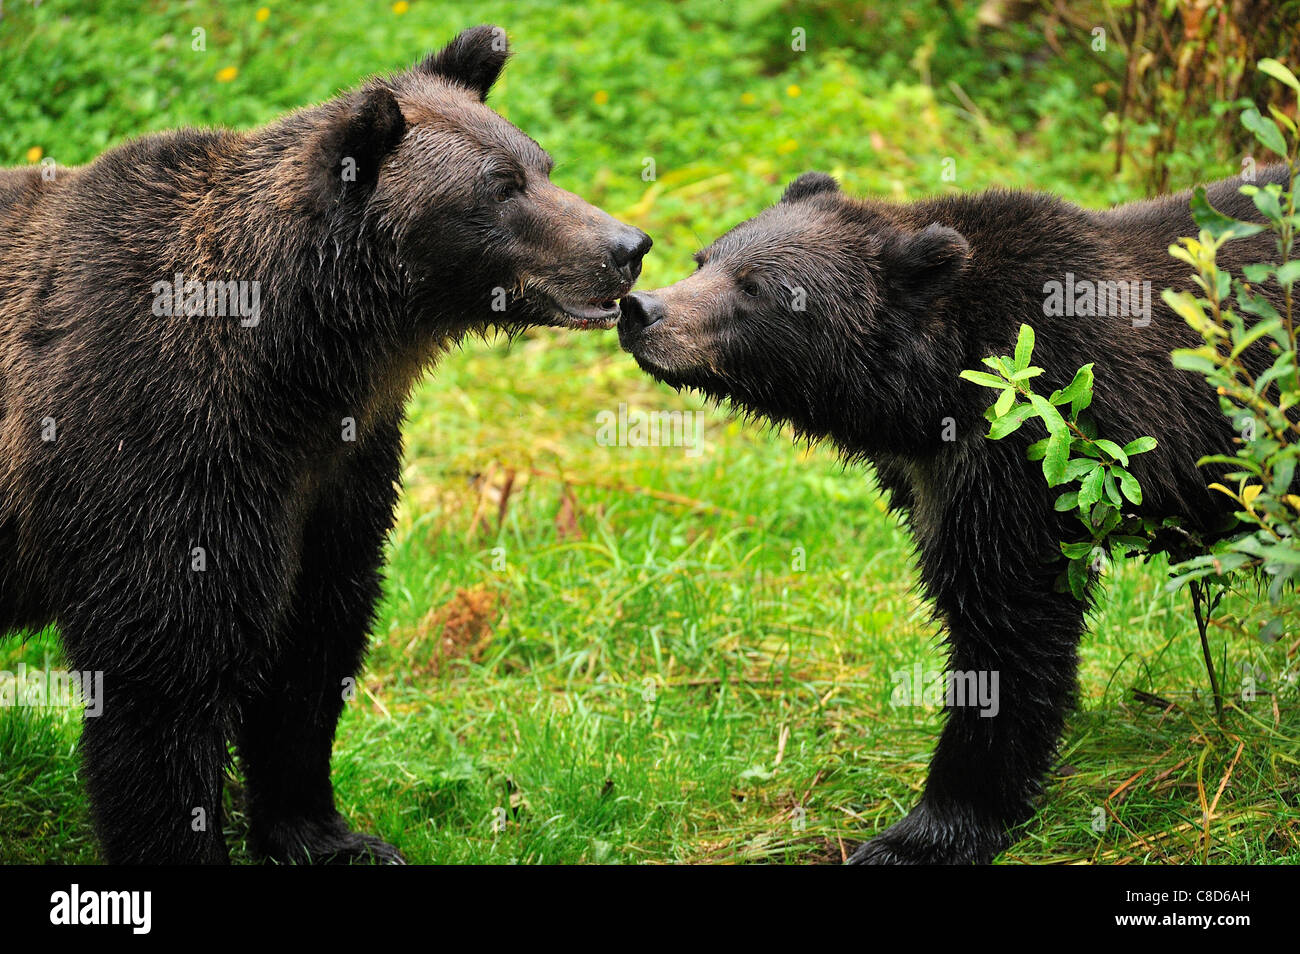 A mother and cub Grizzly bears. Stock Photo